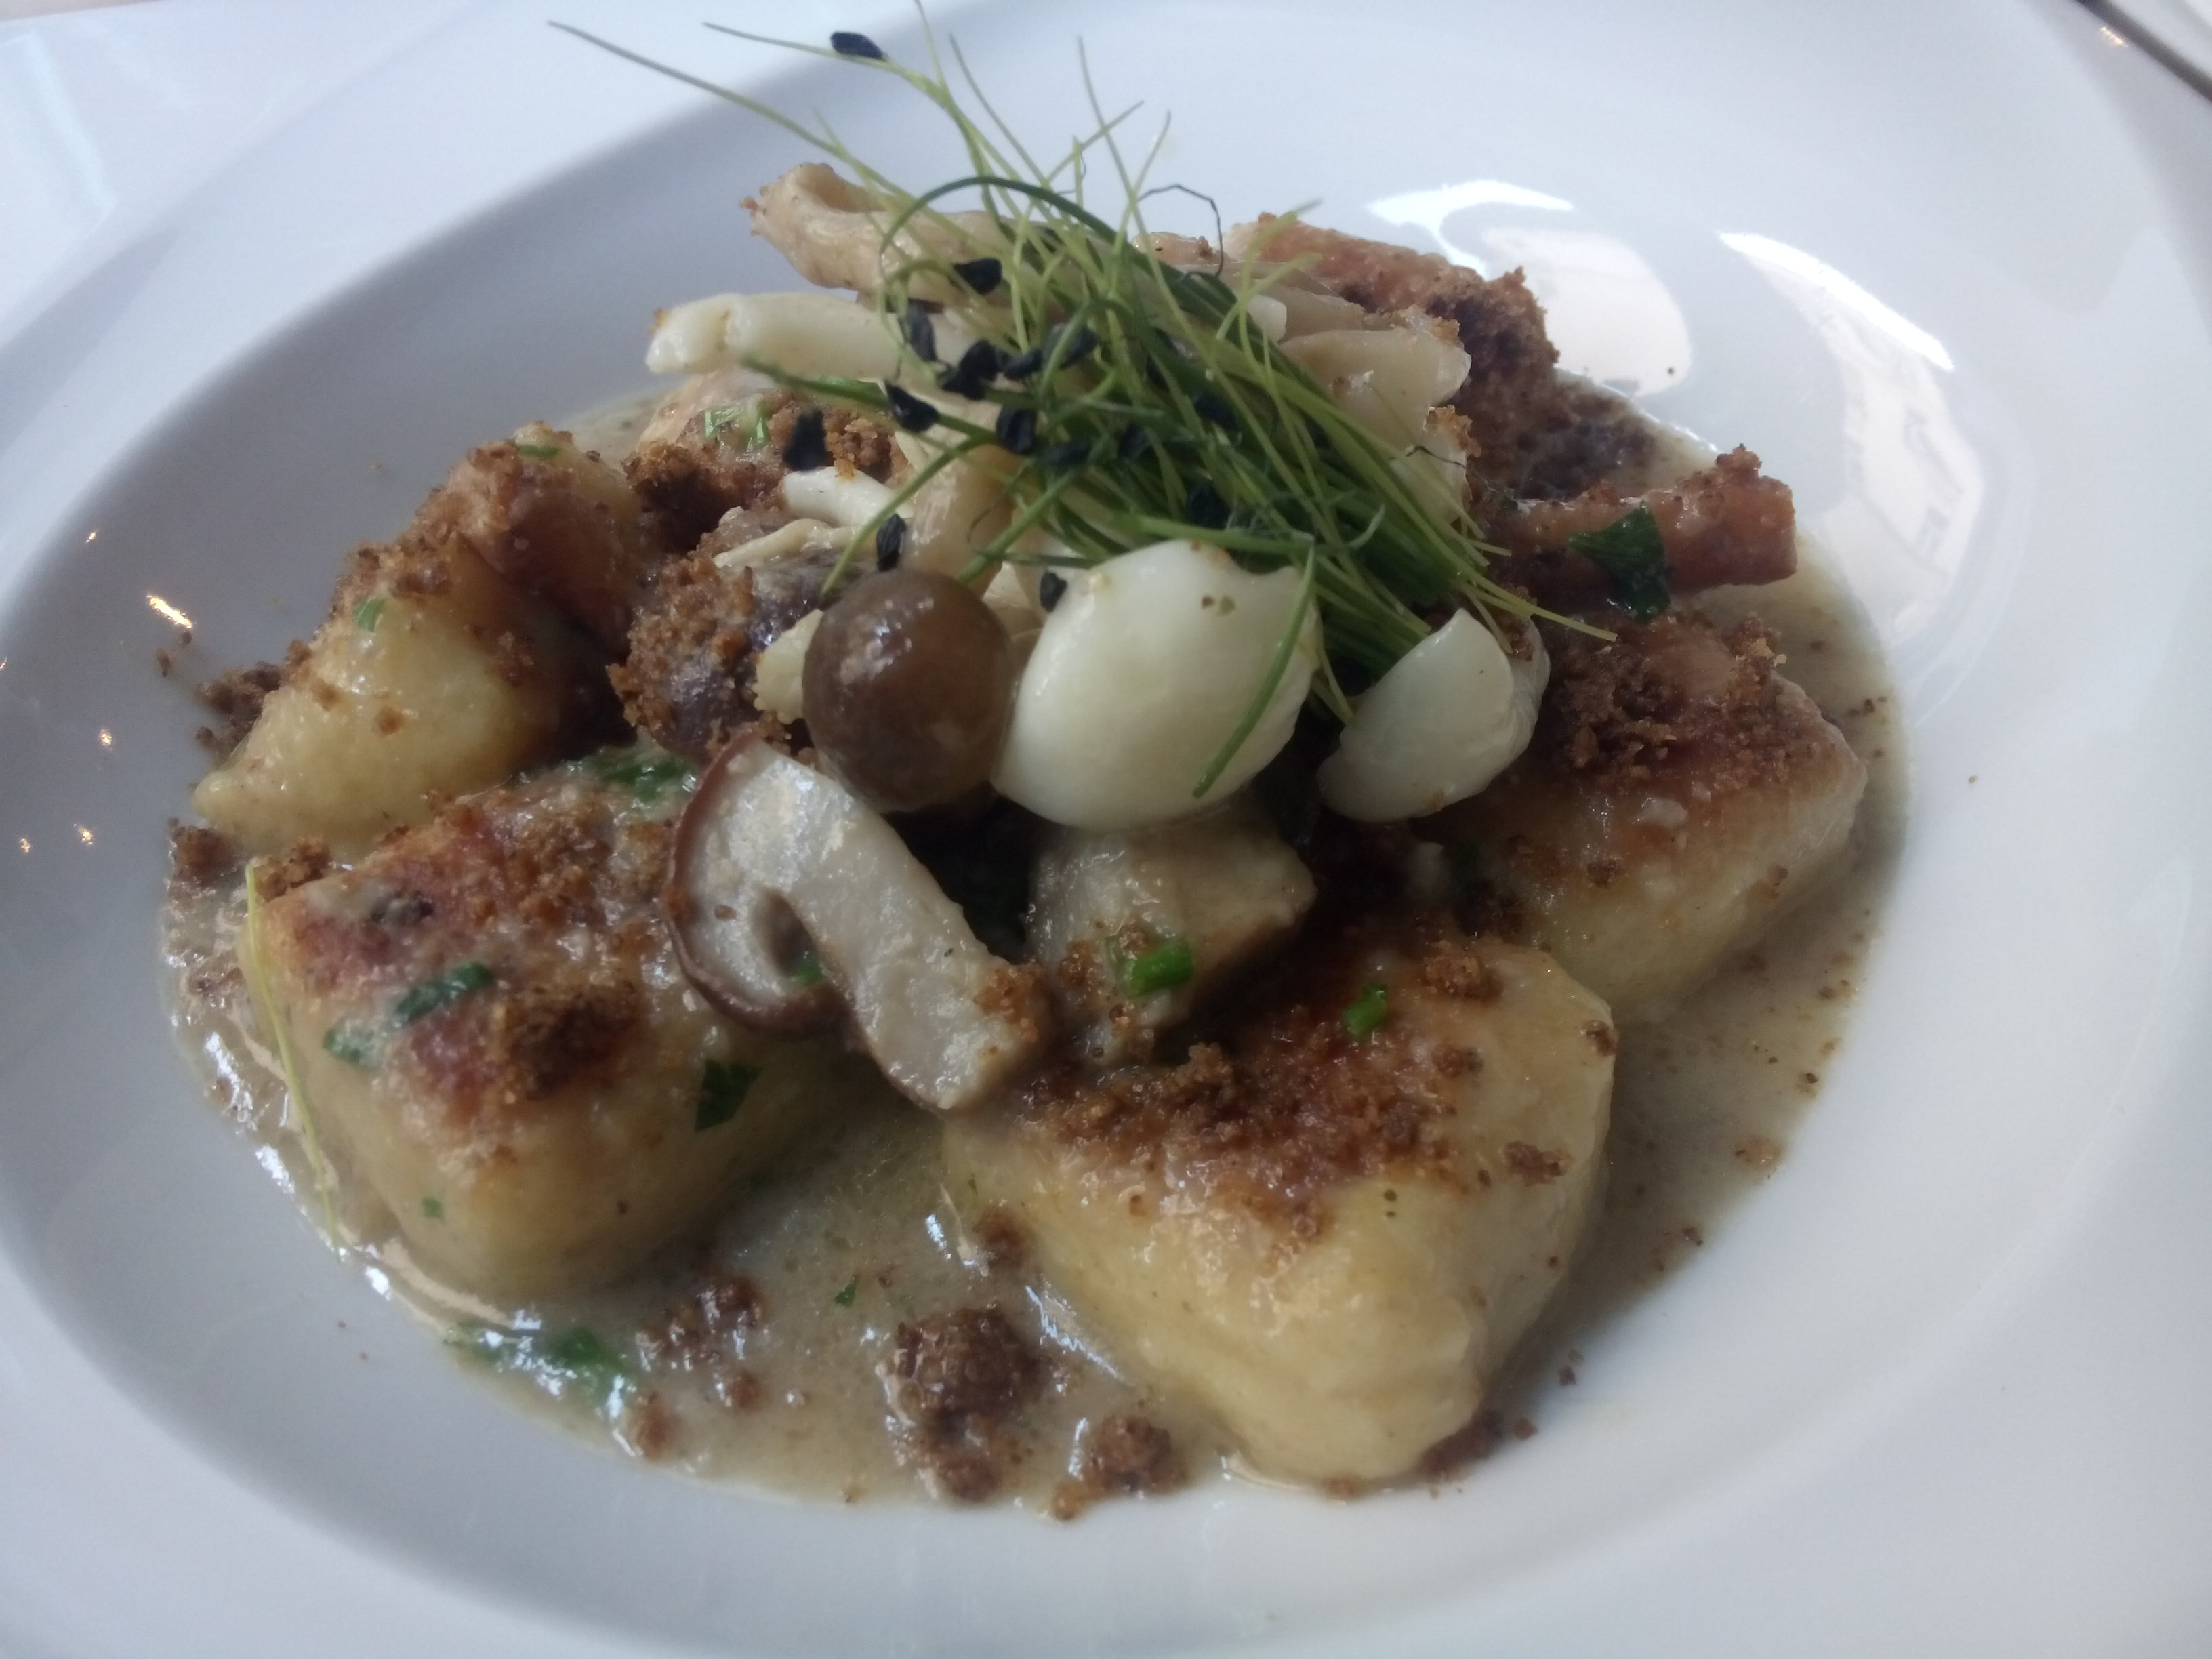 White dish with big squares of gnocchi, and a pile of mushrooms, grassy garnish